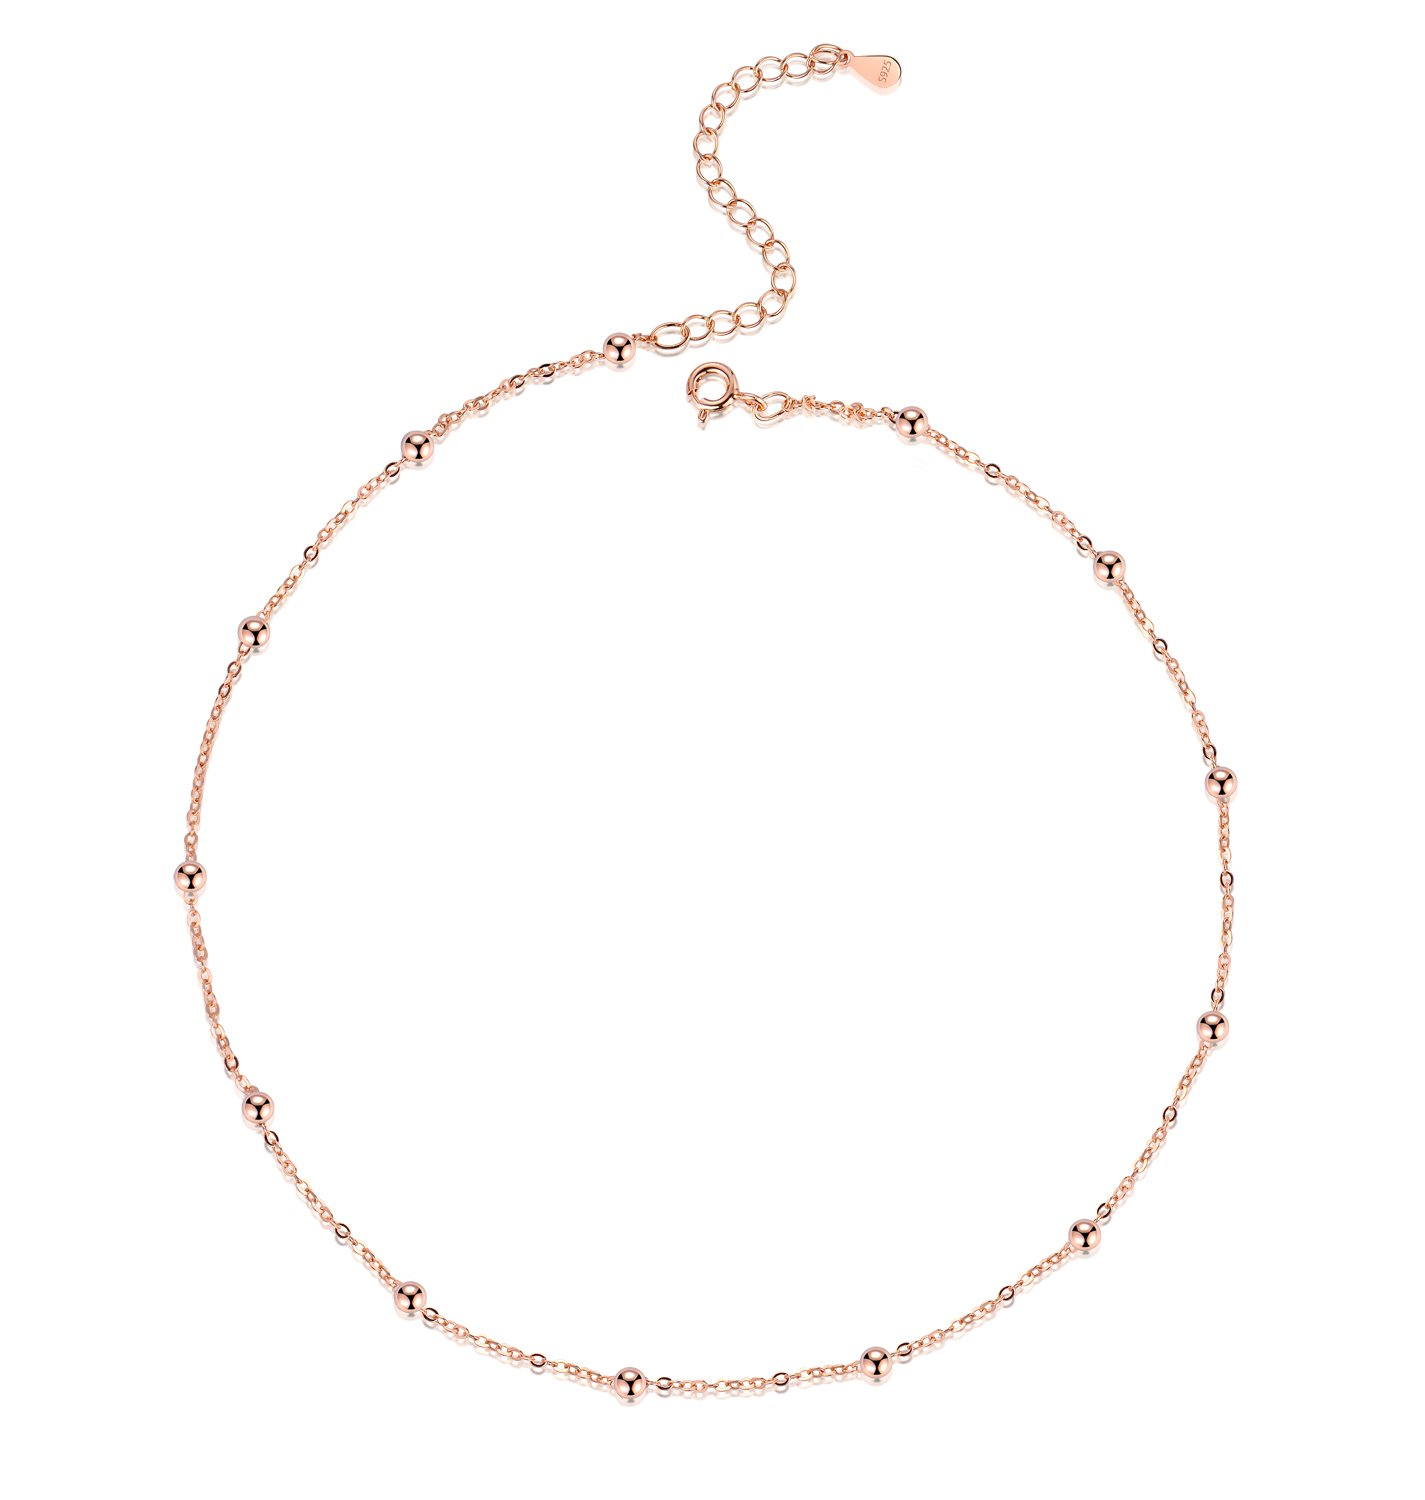 FOROLAV Women's 925 Sterling Silver Beaded Cable Chain Choker Necklace Adjustable, 13.7'' (Rose Gold Color)